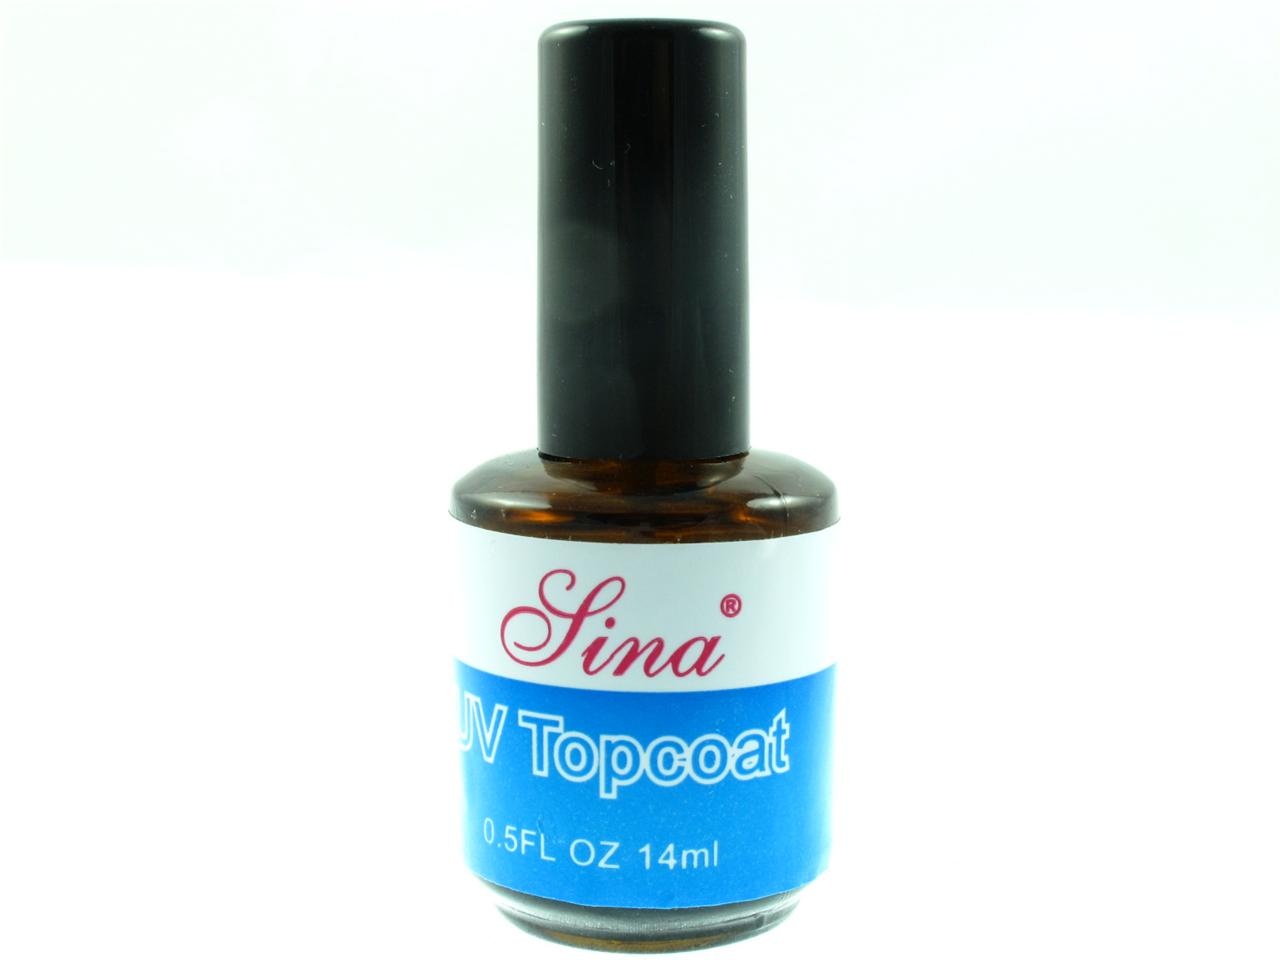 nail art uv gel topcoat acrylic nail gel top coat polish seal 14ml x 1 ebay. Black Bedroom Furniture Sets. Home Design Ideas